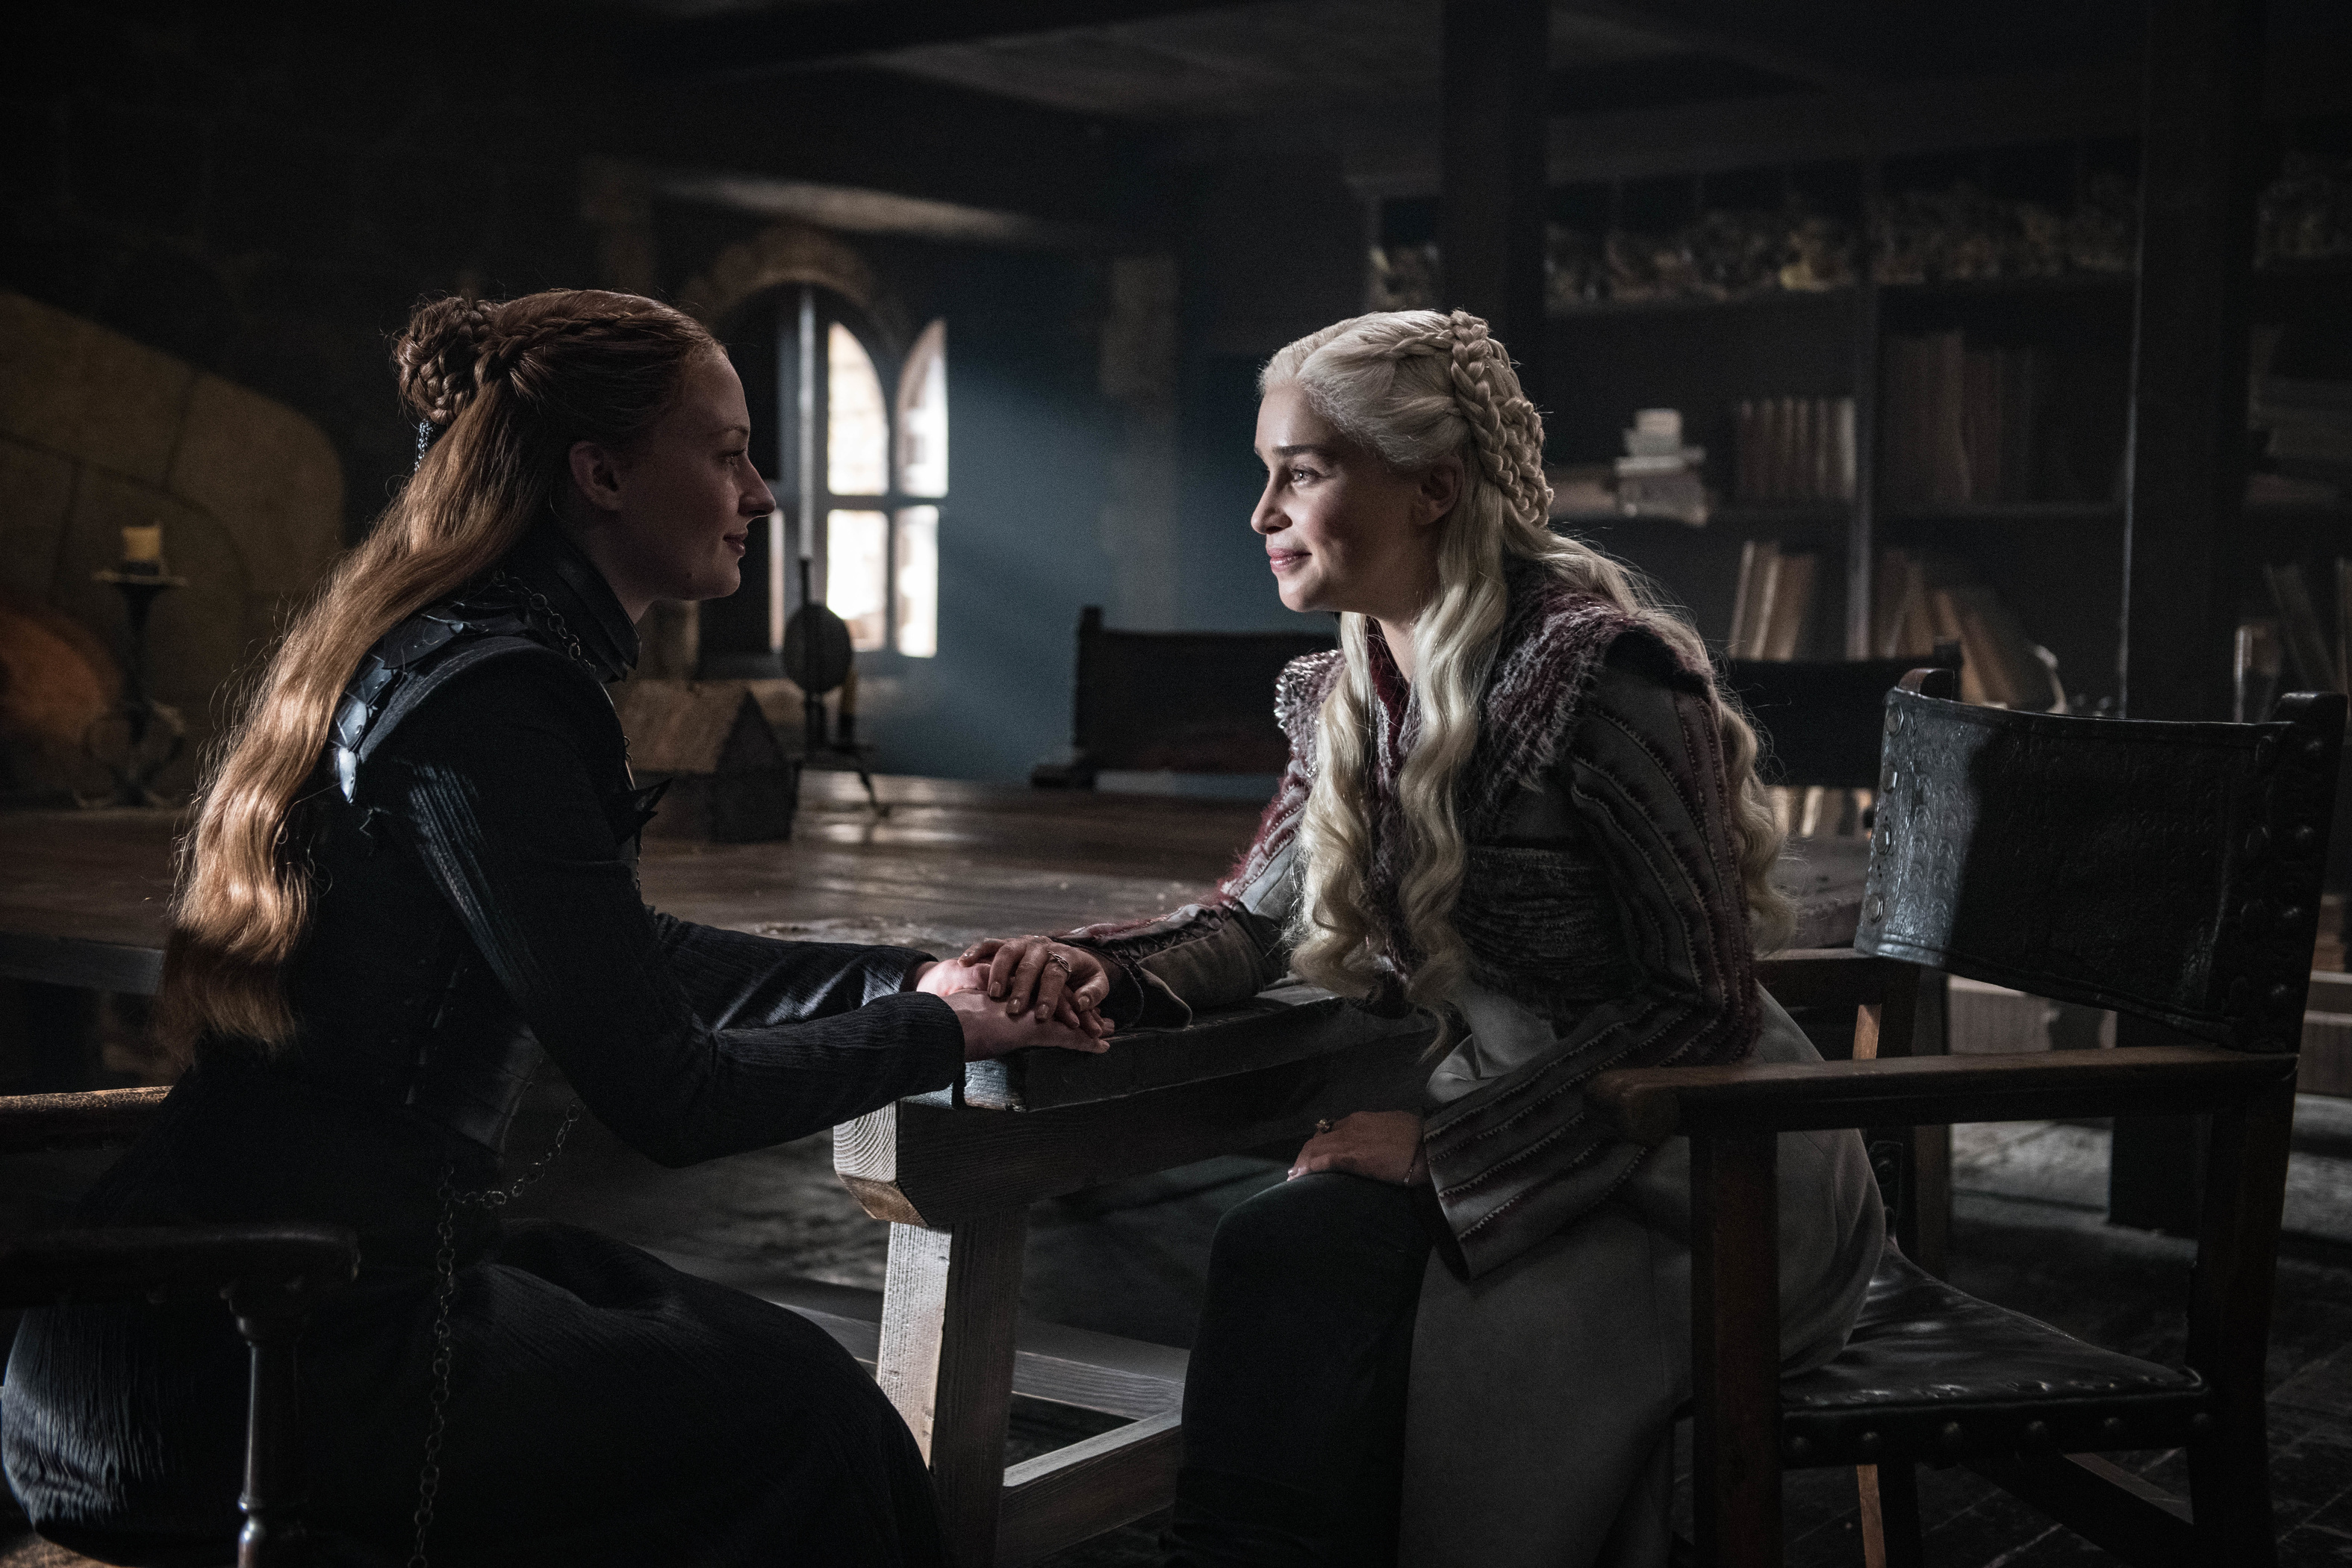 Sansa and Daenerys have an uneasy alliance.